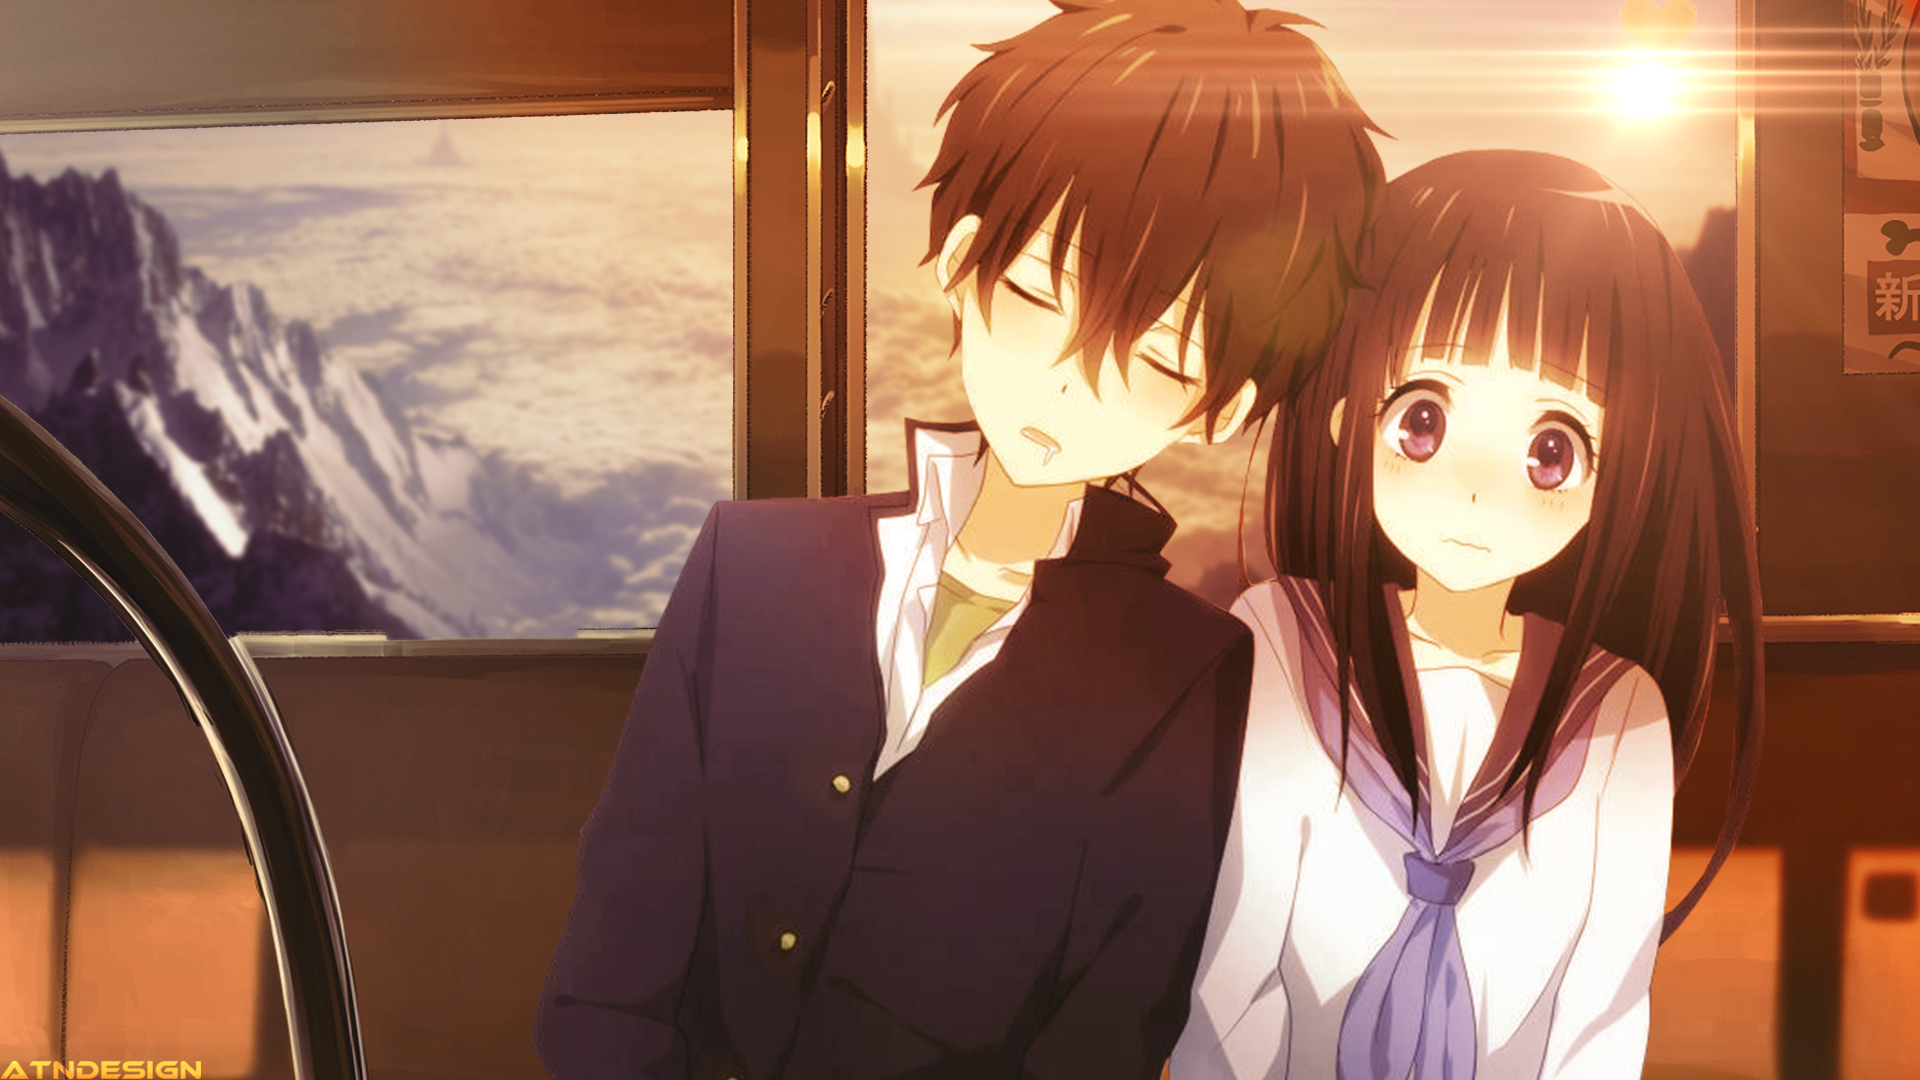 Cute Anime Couple Desktop Wallpapers 1920x1080